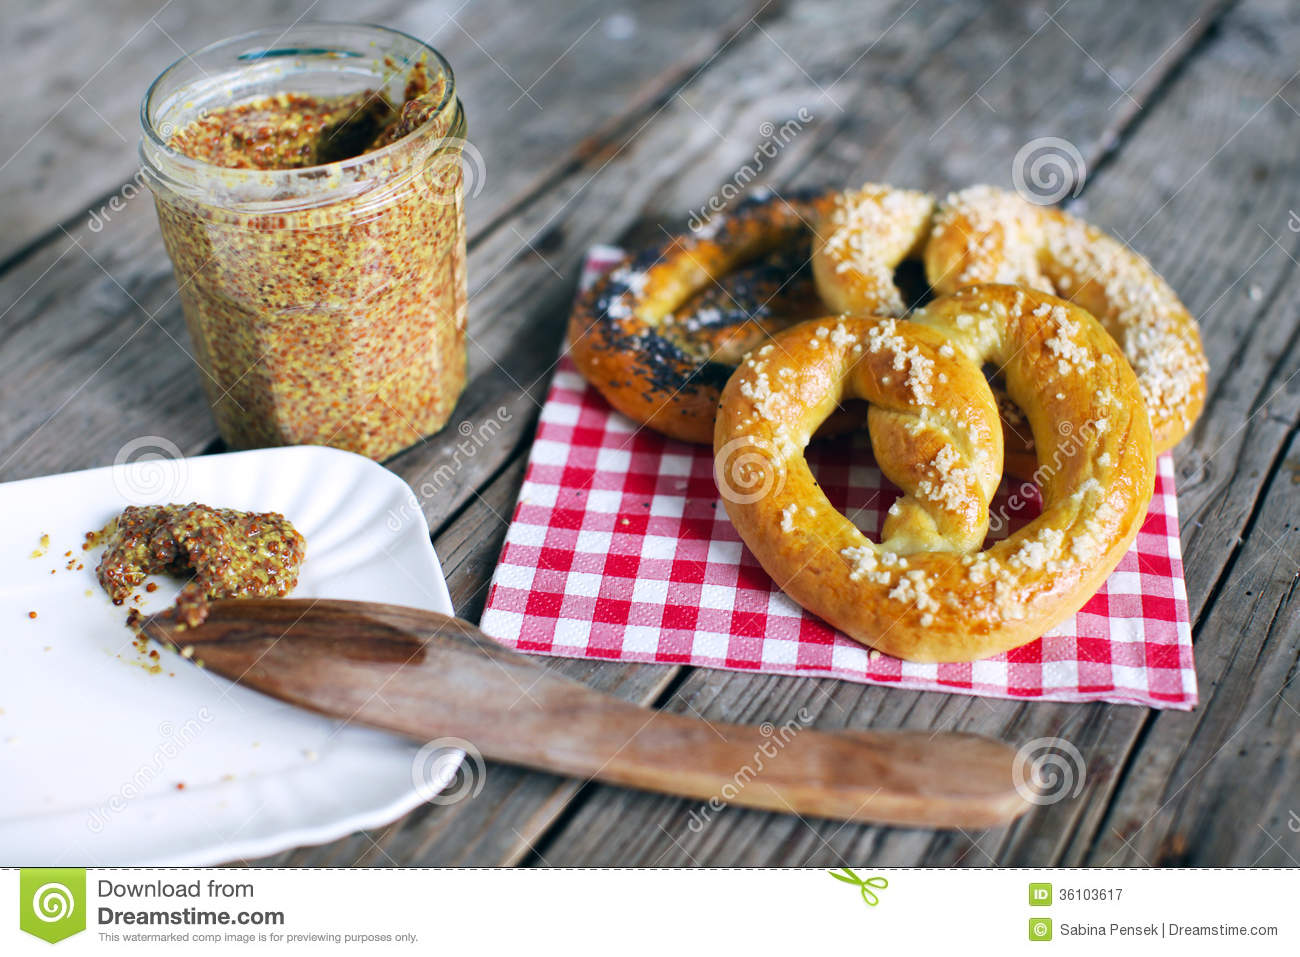 Pretzels With Salt And Grainy Mustard, Snack Food For Picknick Royalty ...